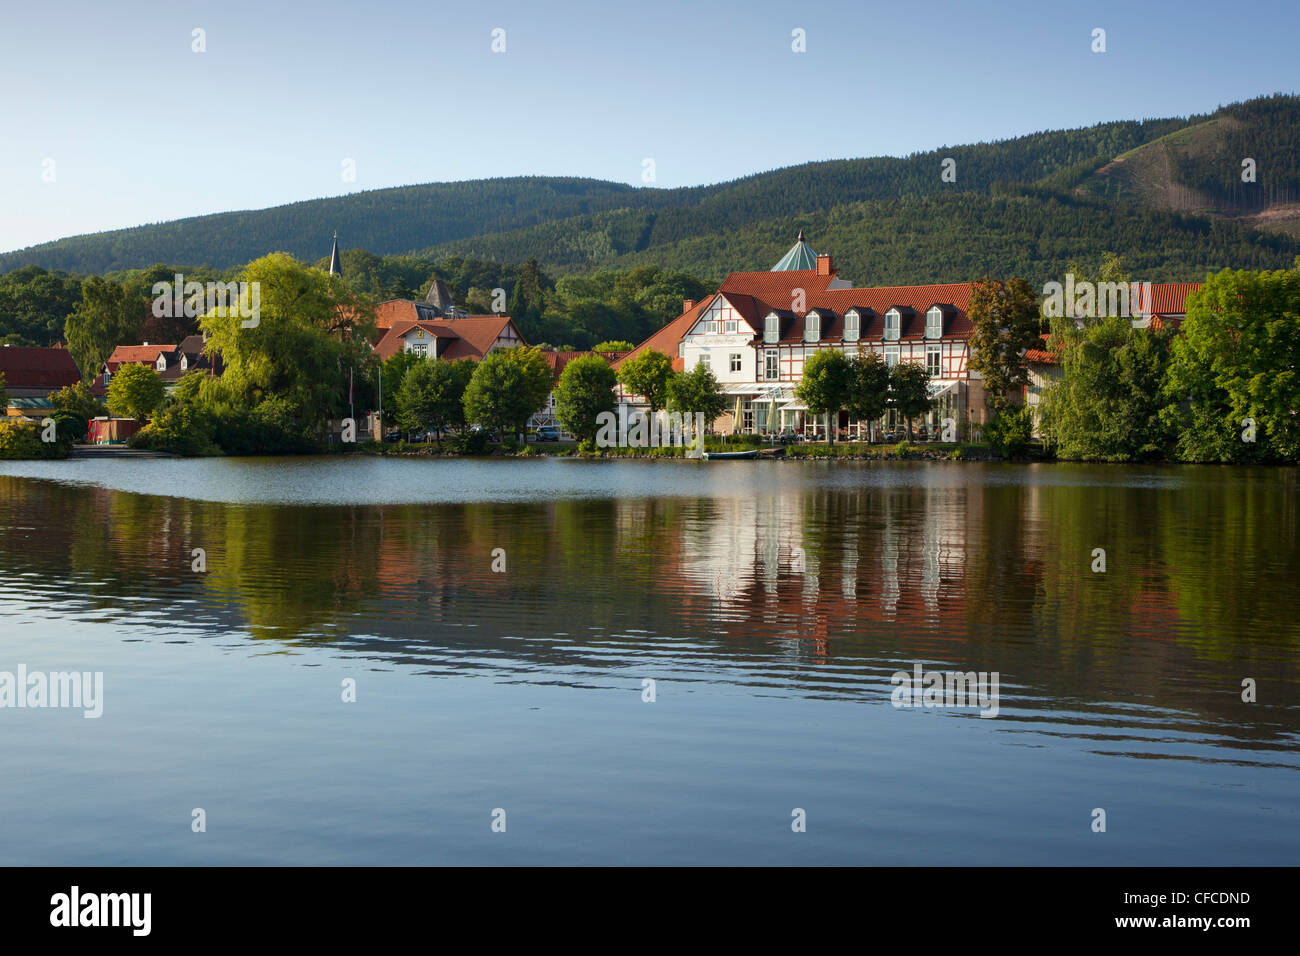 trout lake near hotel zu den rothen forellen ilsenburg harz stock photo 43914793 alamy. Black Bedroom Furniture Sets. Home Design Ideas